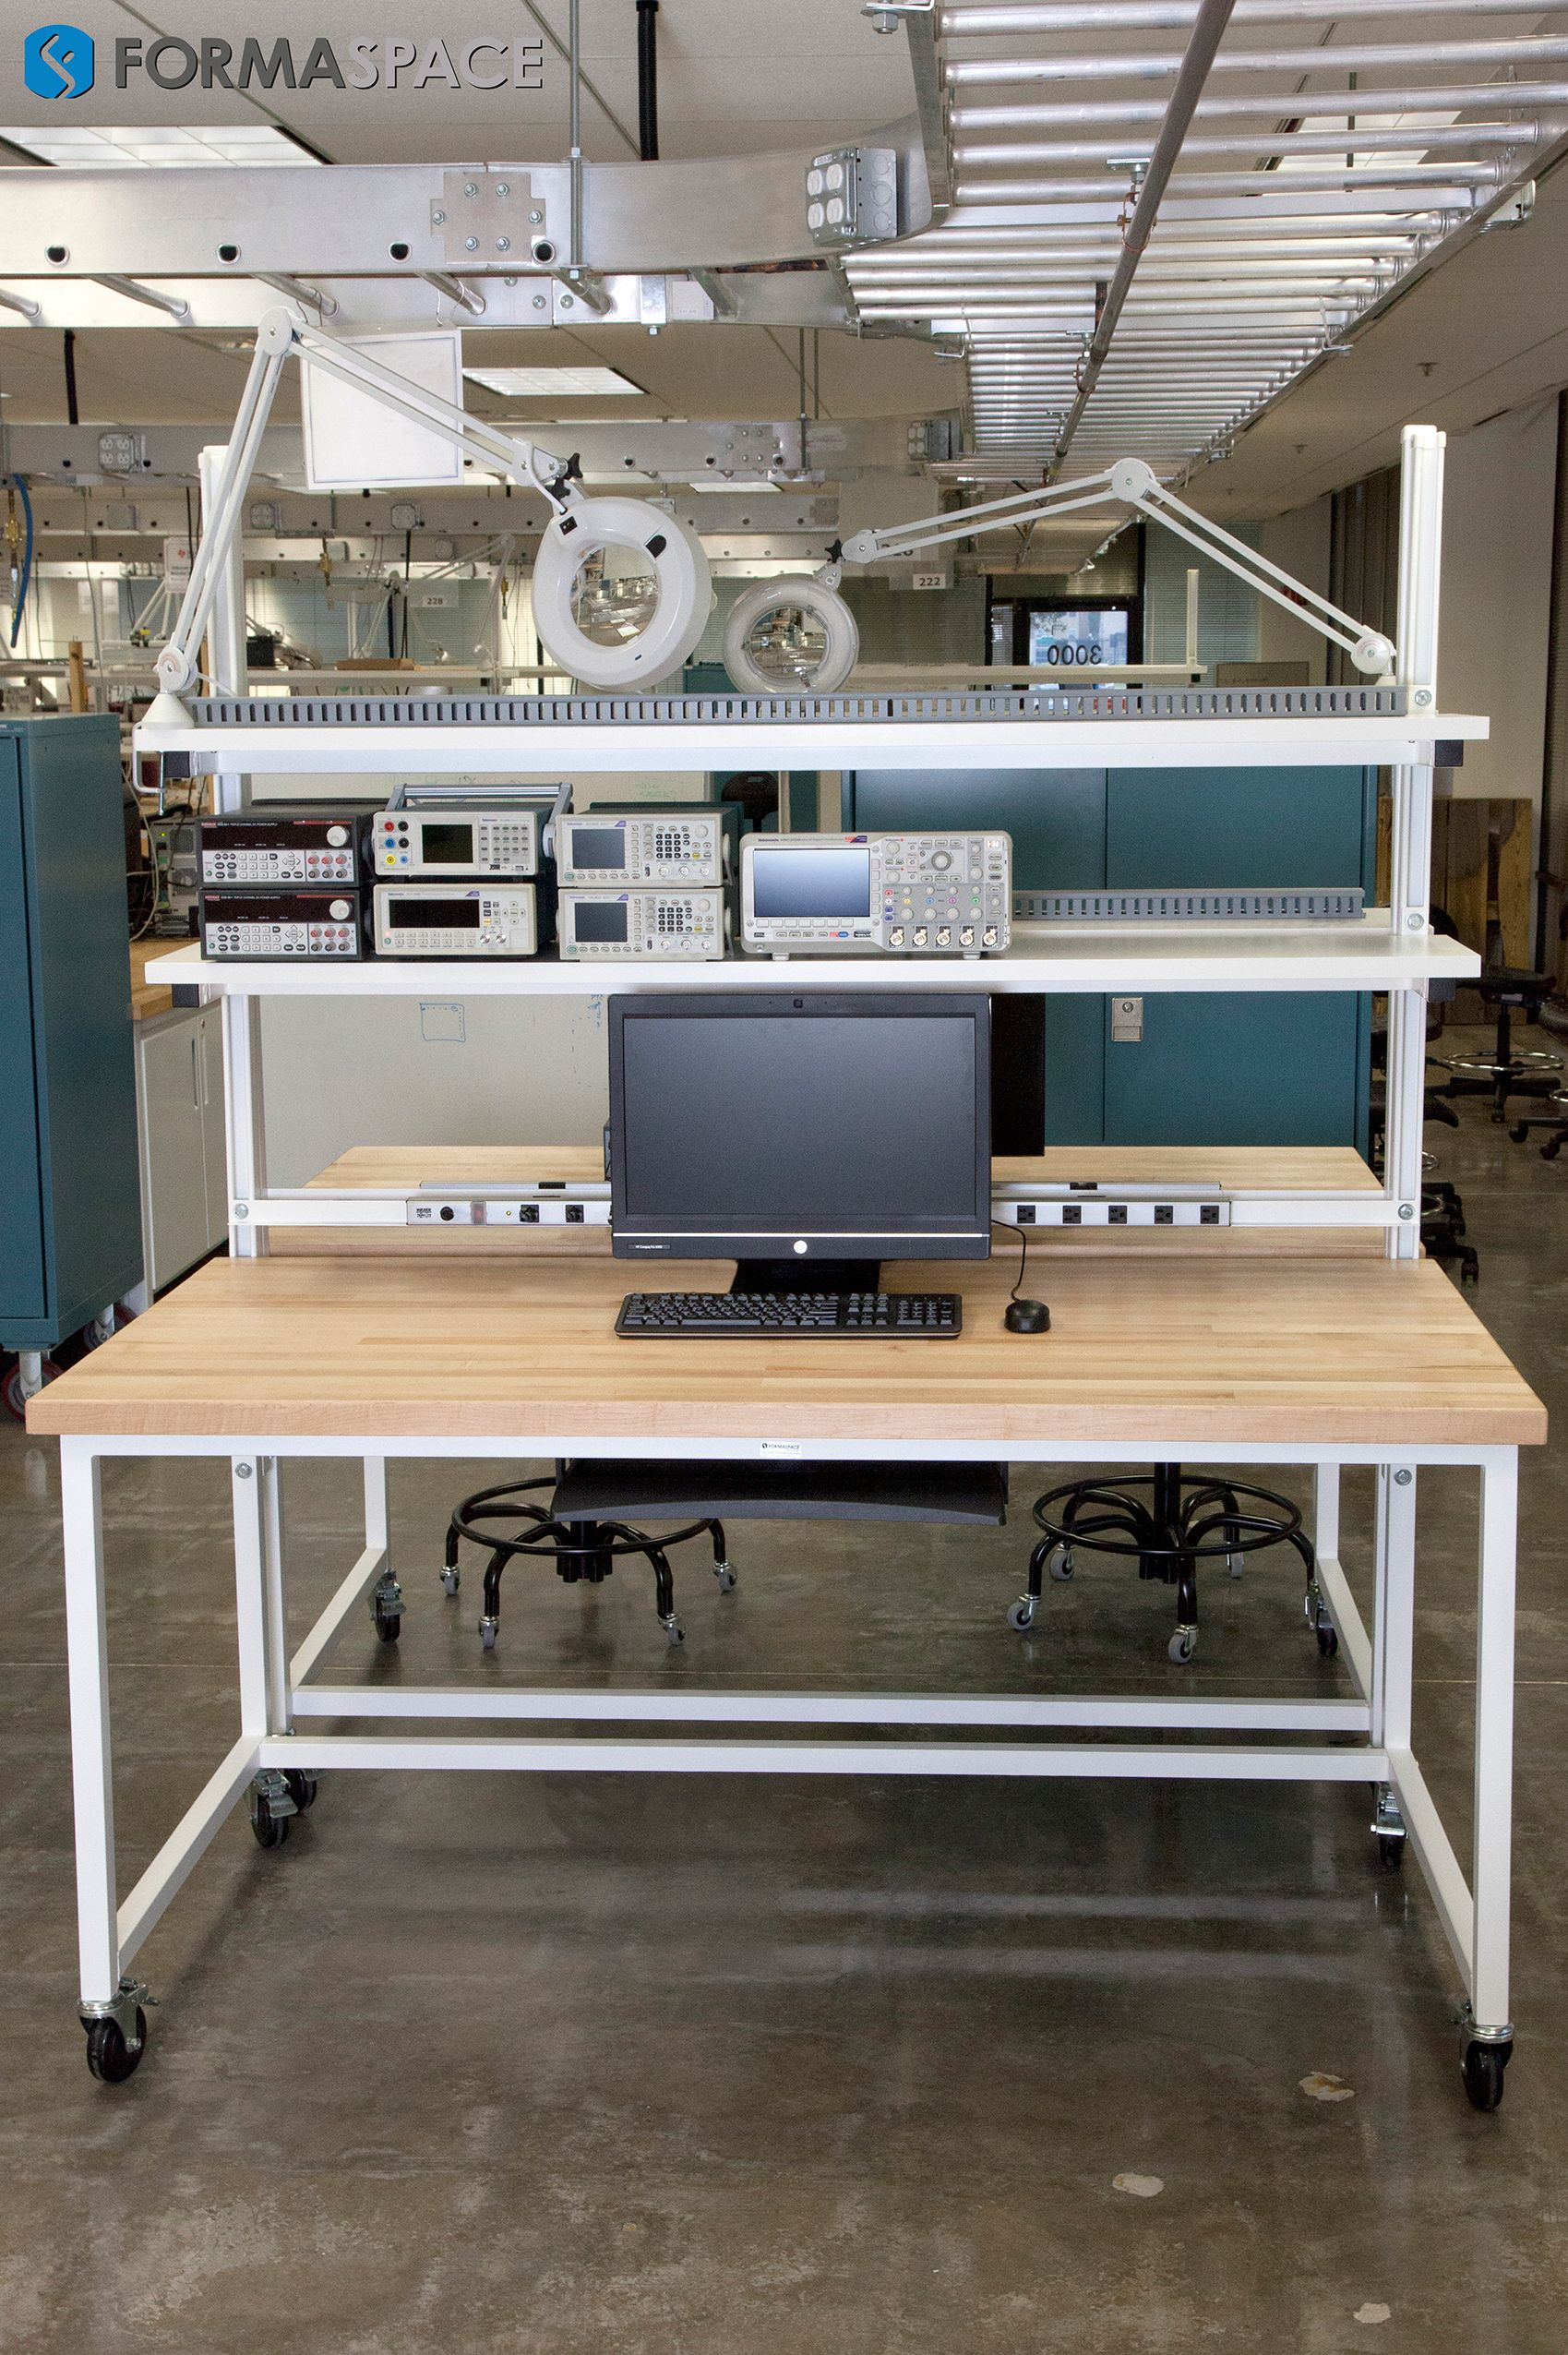 Formaspace S Workbench Gallery Features But A Few Of The Thousands Of Industrial Workbenches Laborat Electronics Lab Workbenches Workbench Plans Diy Workbench